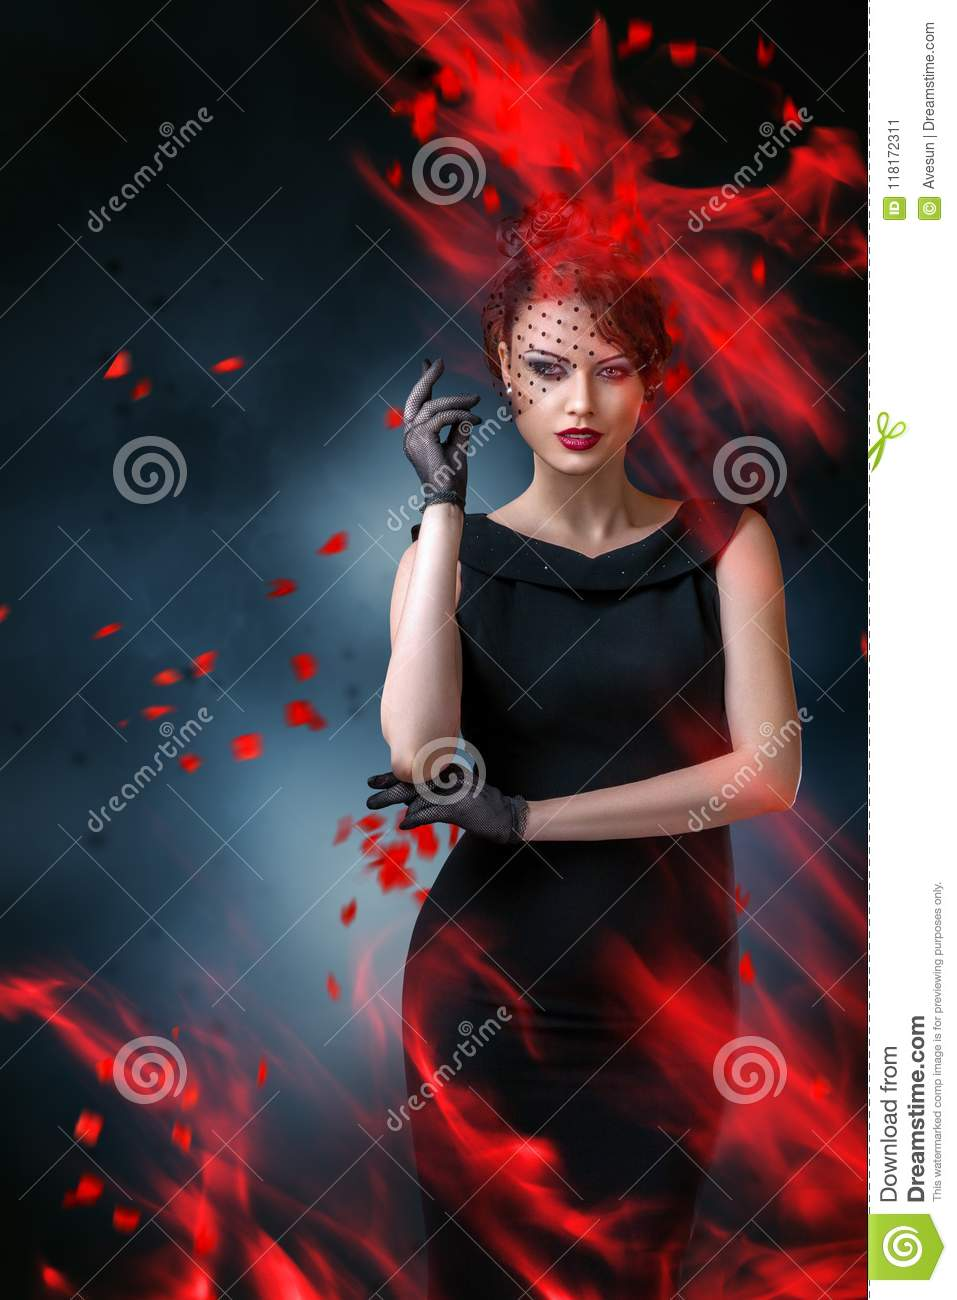 Abstract fashion portrait of young woman with flame